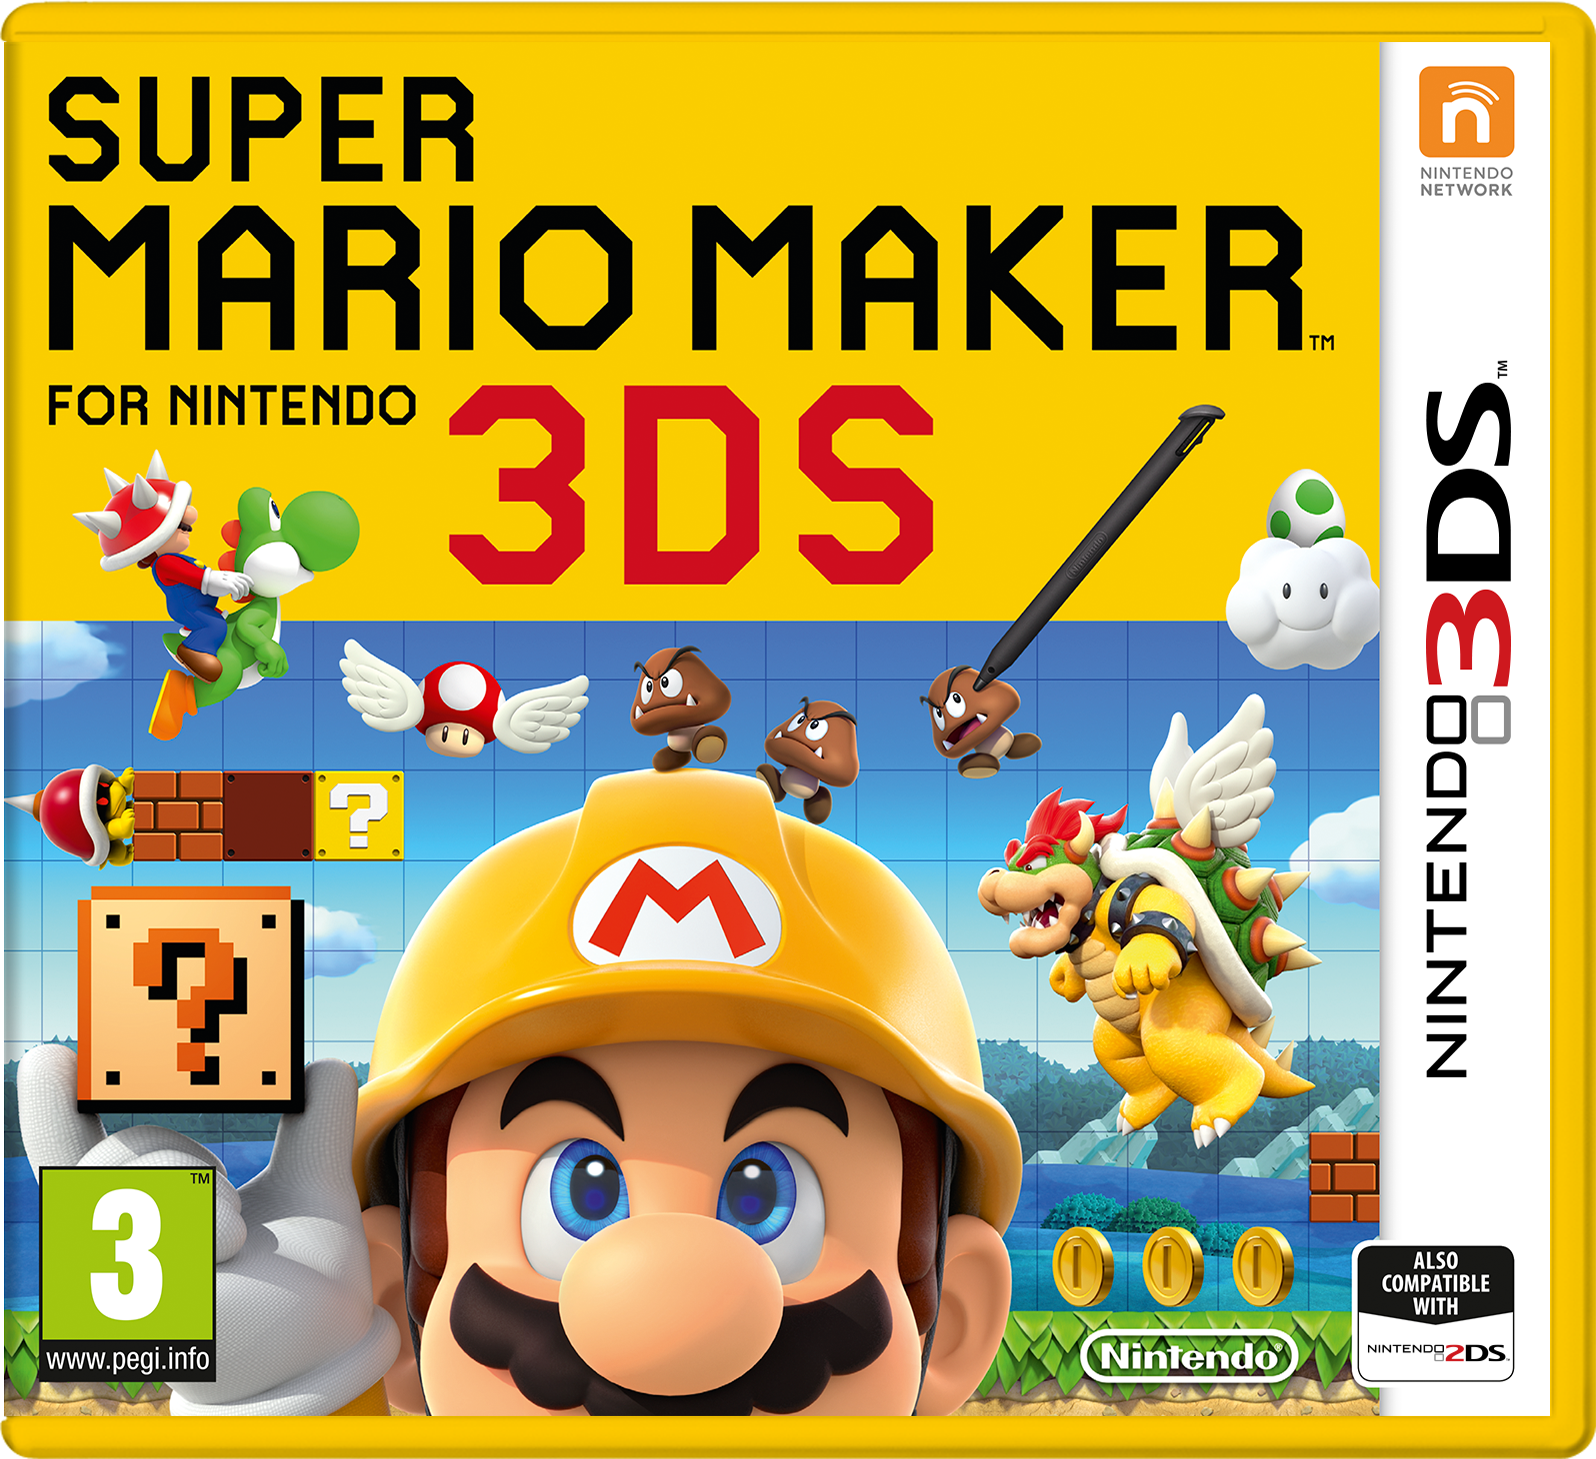 PS_3DS_SuperMarioMaker_UKV